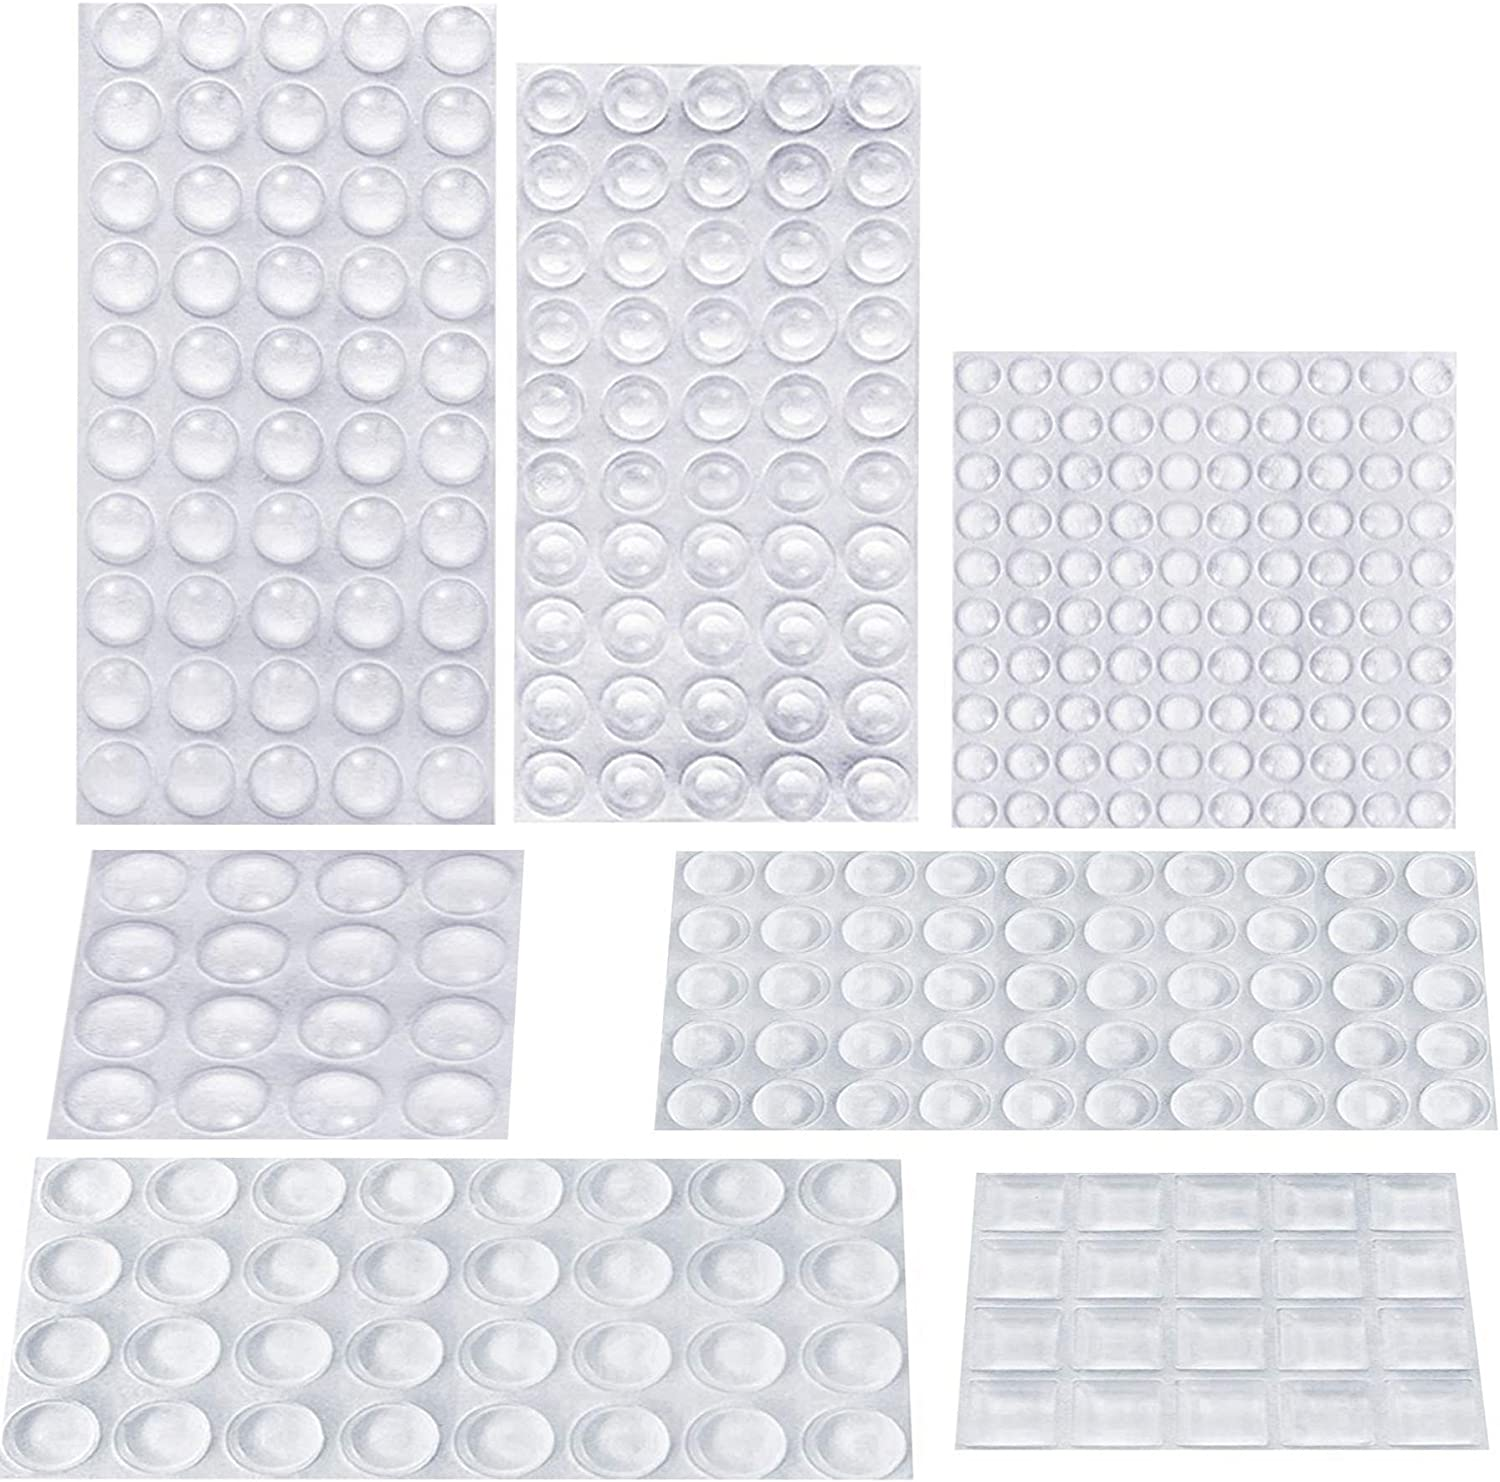 AUSTOR 318 Pieces Rubber Feet, Noise Dampening Buffer Pads Clear Rubber Pads Self Stick Bumper Pads for Doors, Cabinets, Drawers, Glass, Electrical Appliances